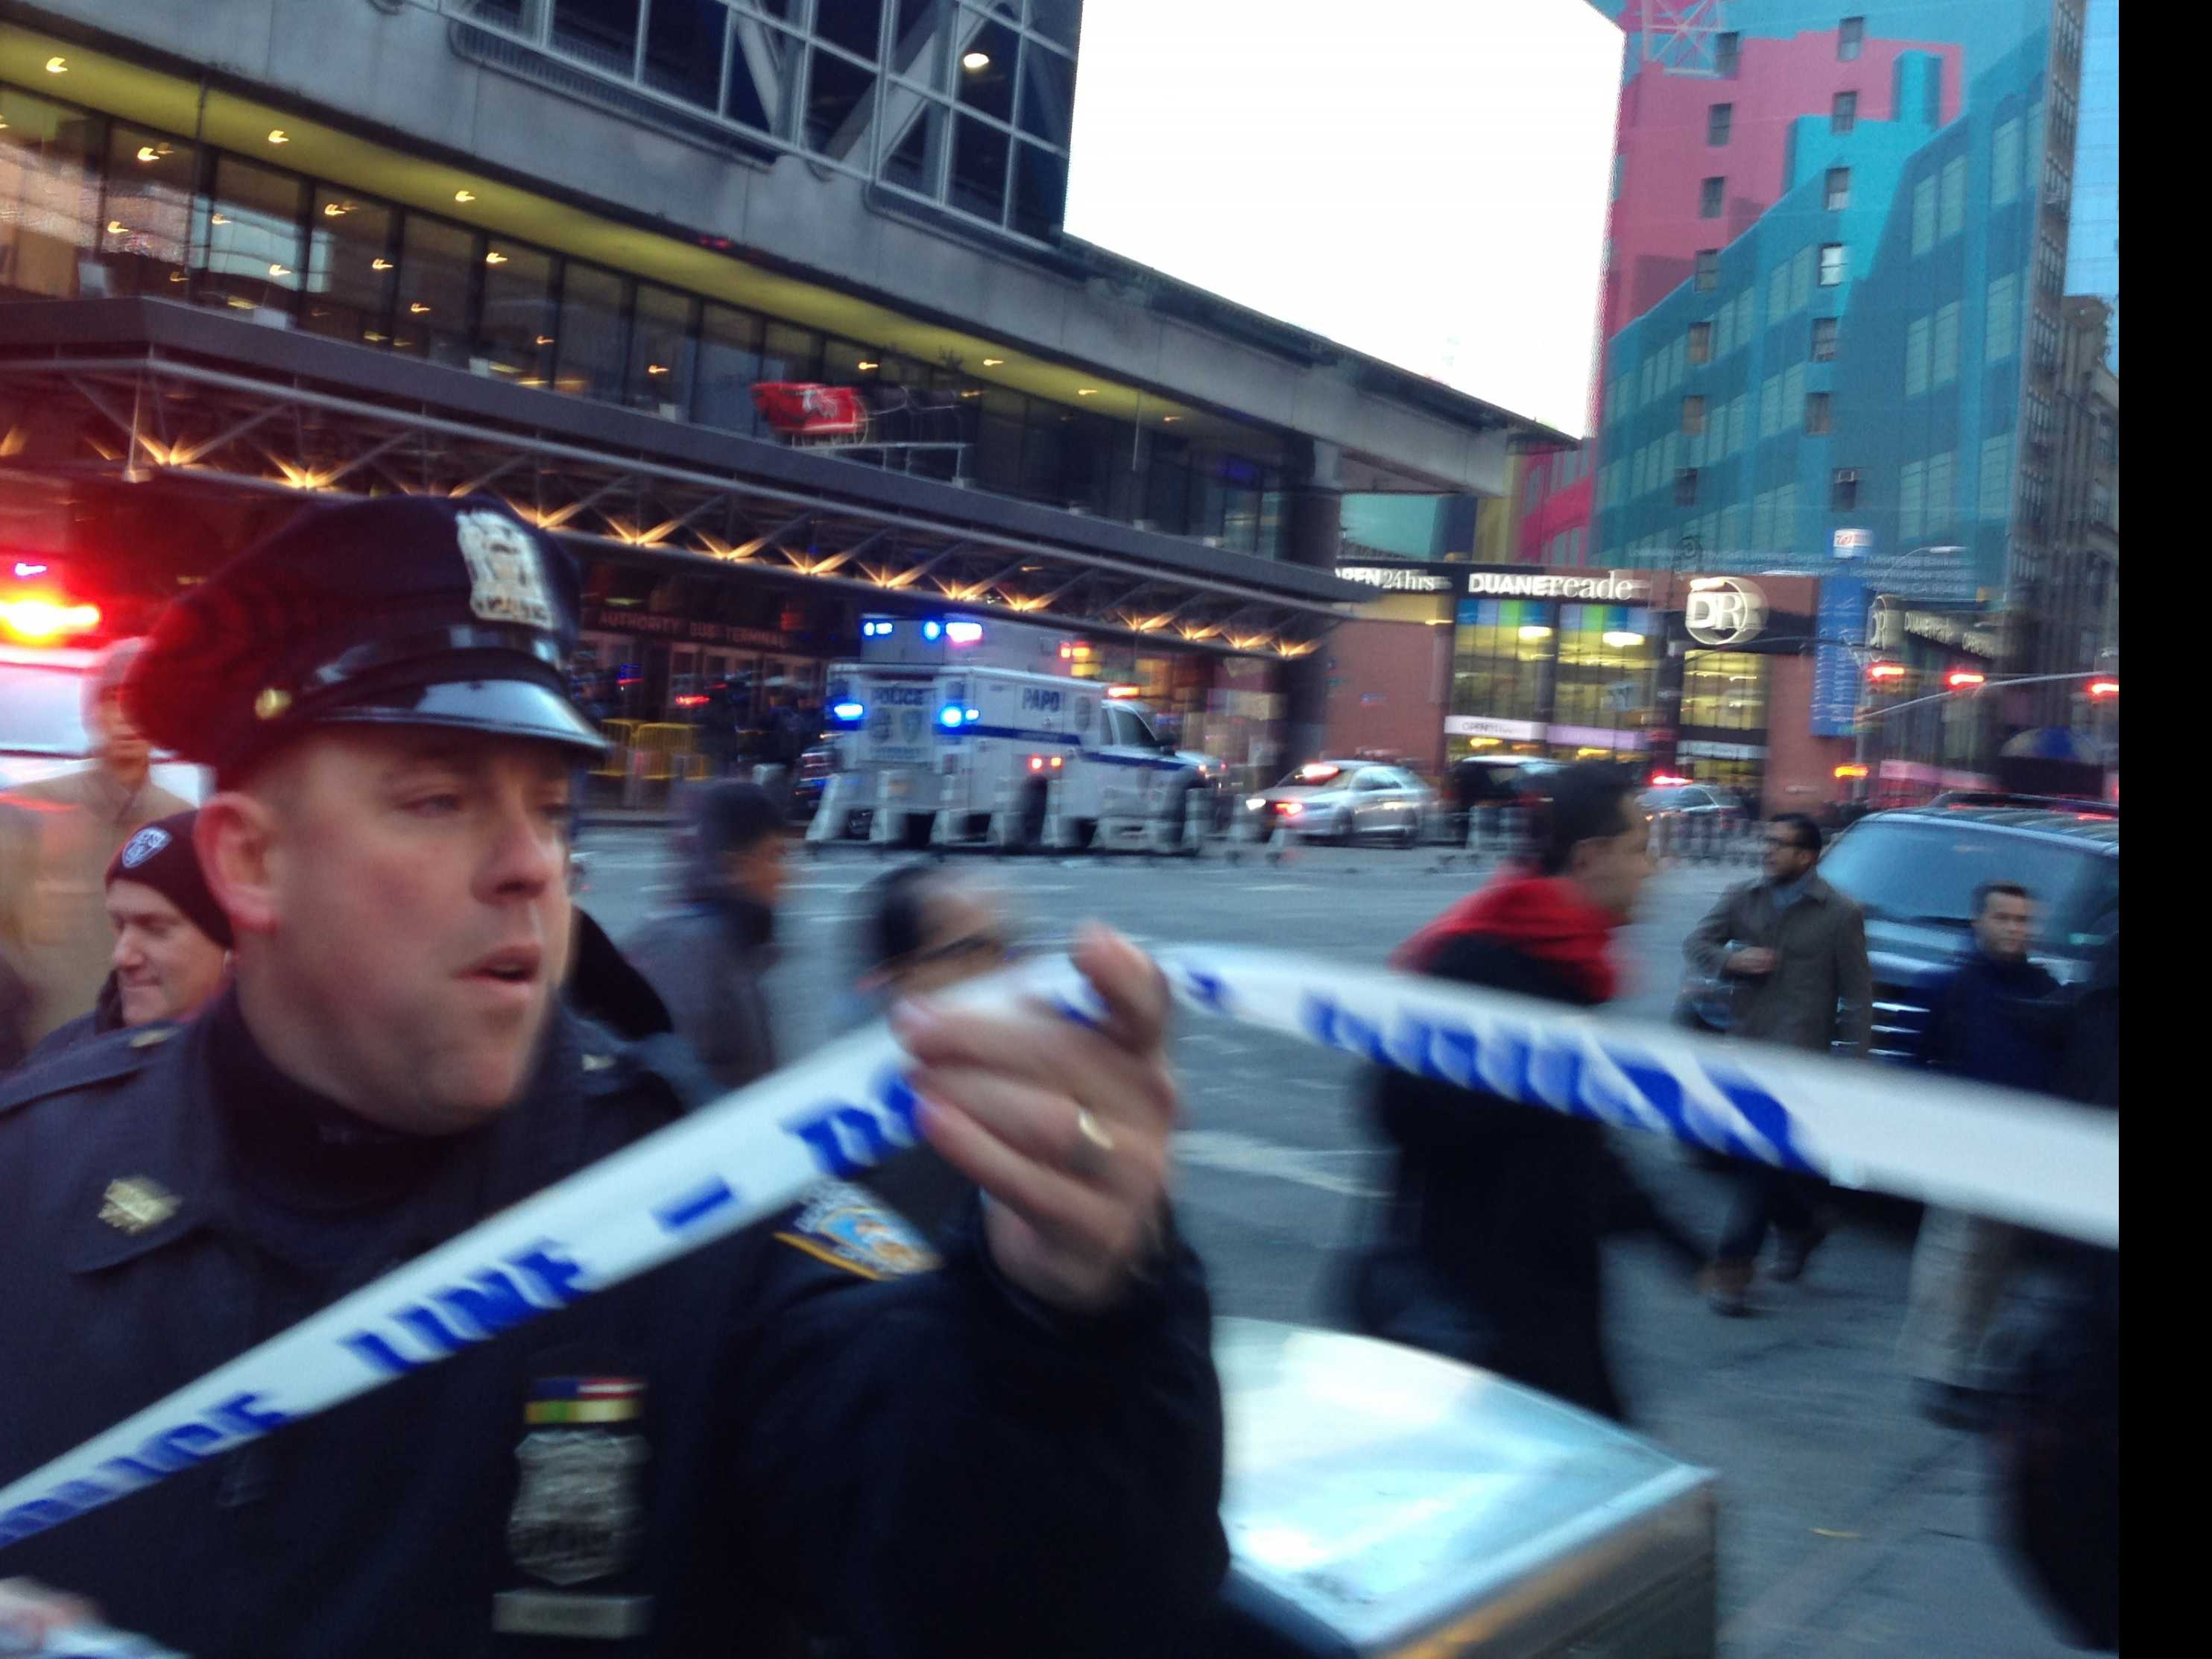 Official: Device Explodes on NYC Subway Platform